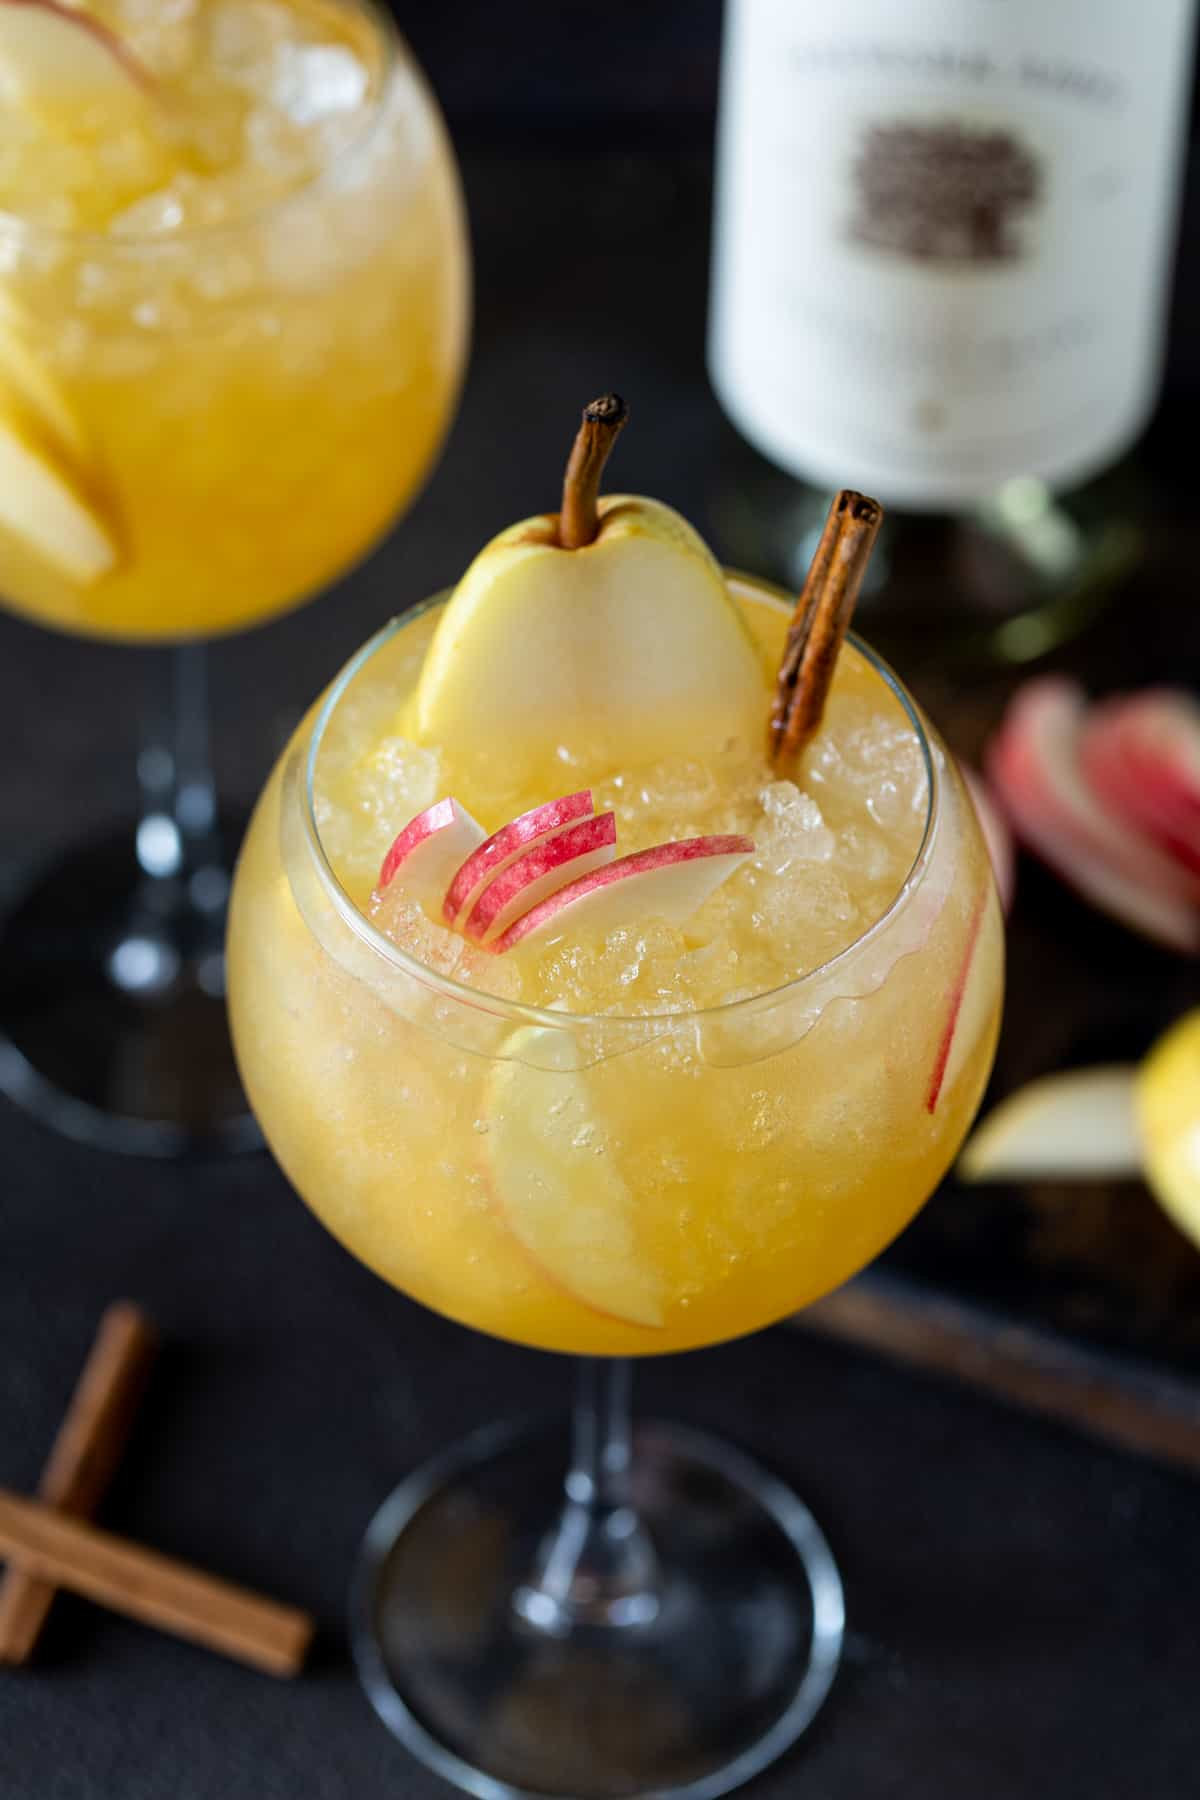 A glass of sangria, with Sangria and Apple slices.